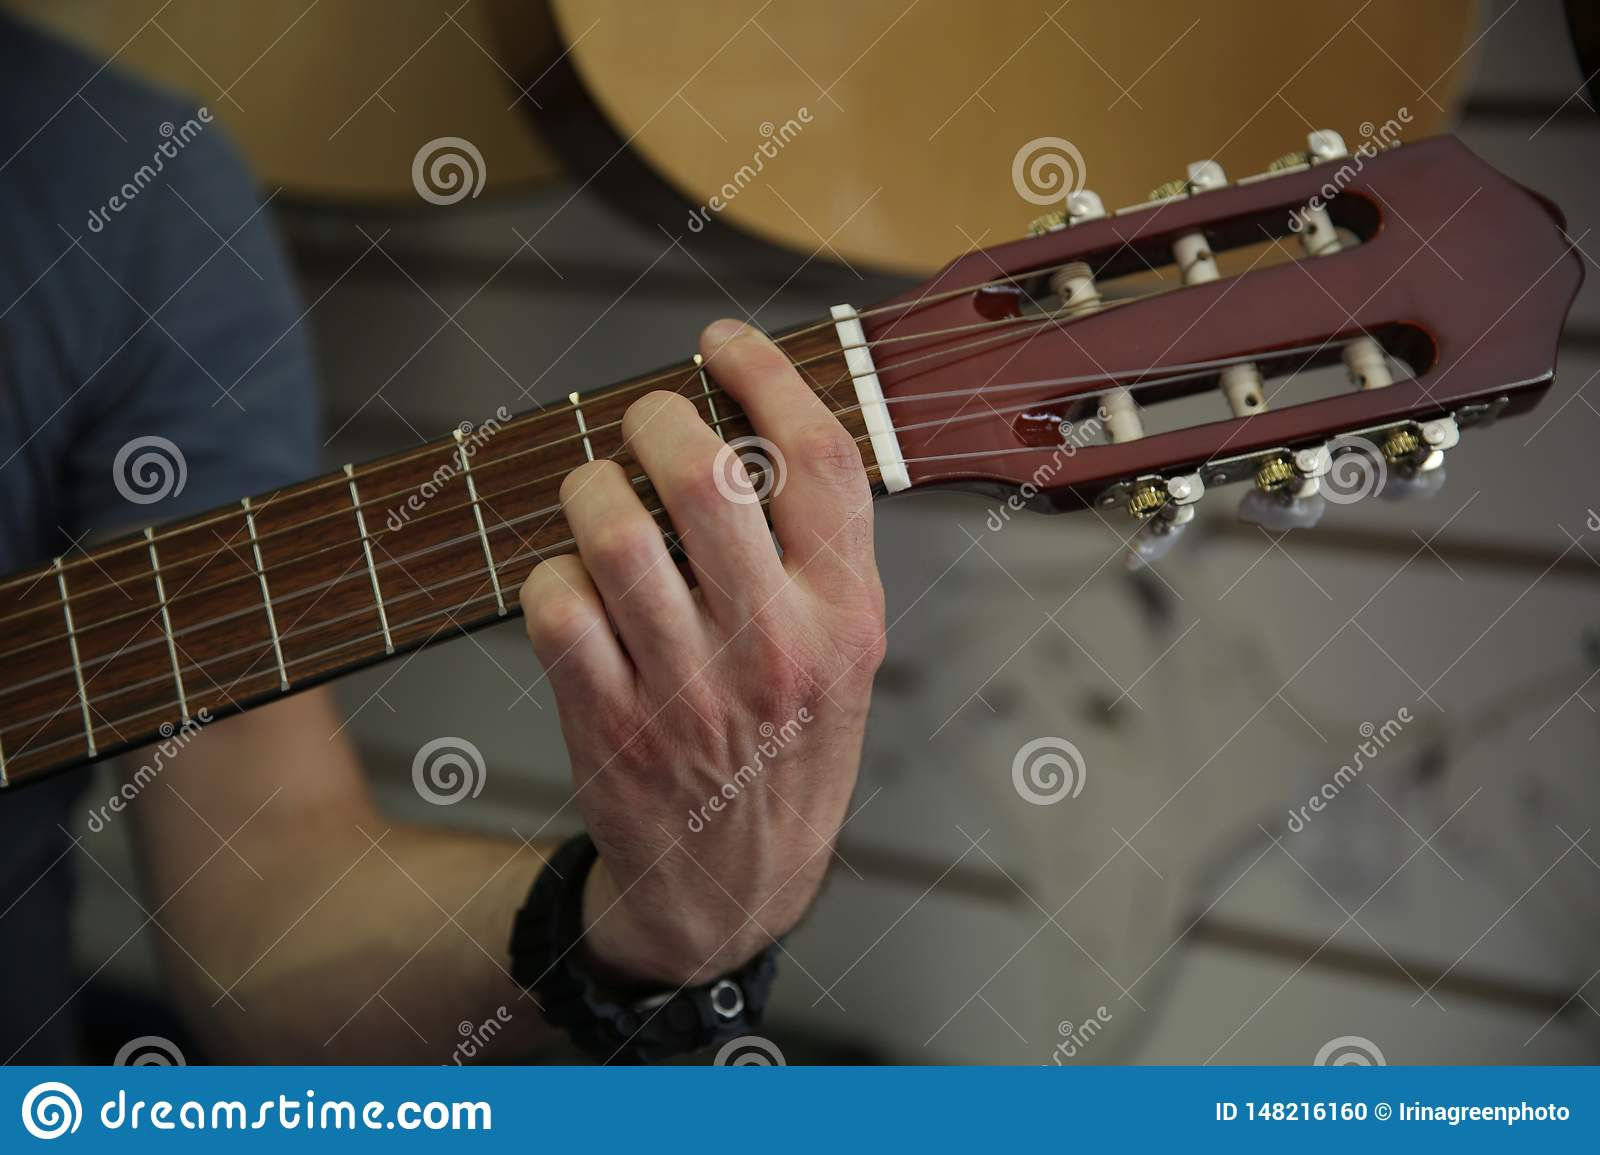 Man playing a classic guitar. Hand picks up the strings on the guitar.